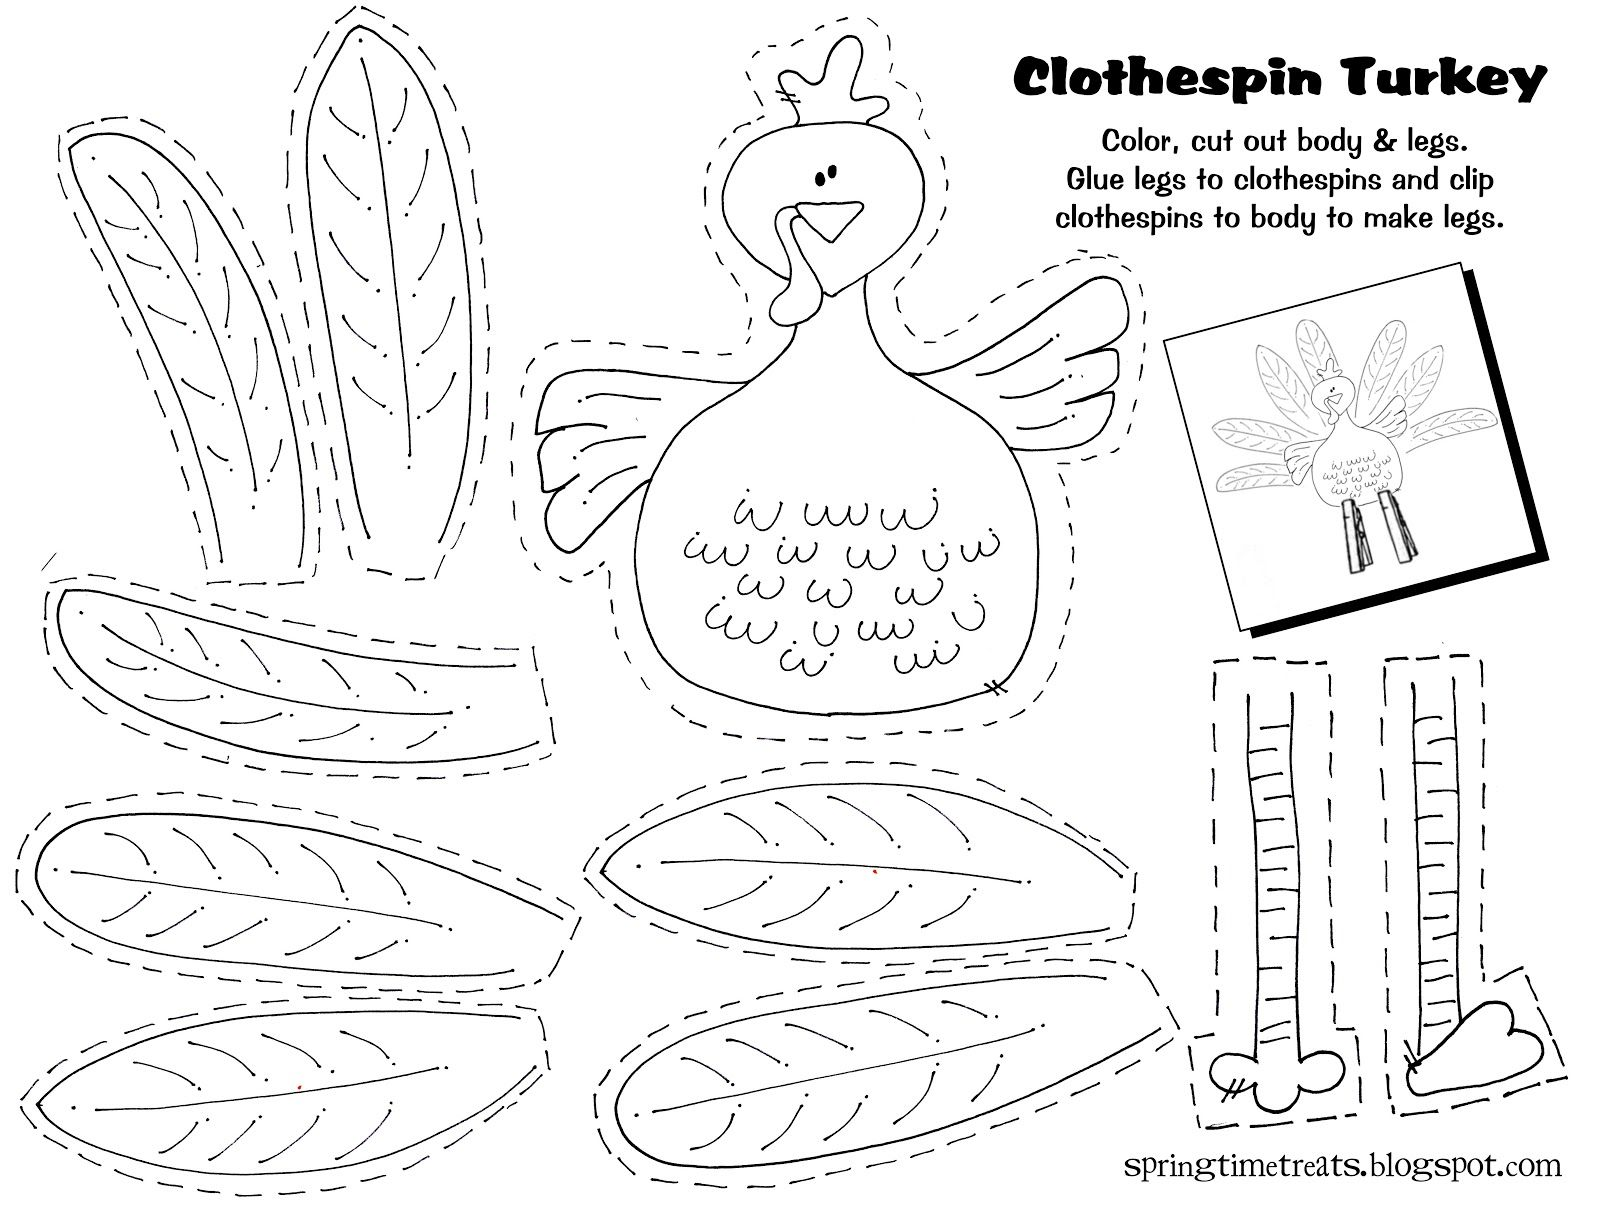 photograph relating to Thanksgiving Craft Printable titled Free of charge printable - Clothespin Turkey. Very simple craft notion for the